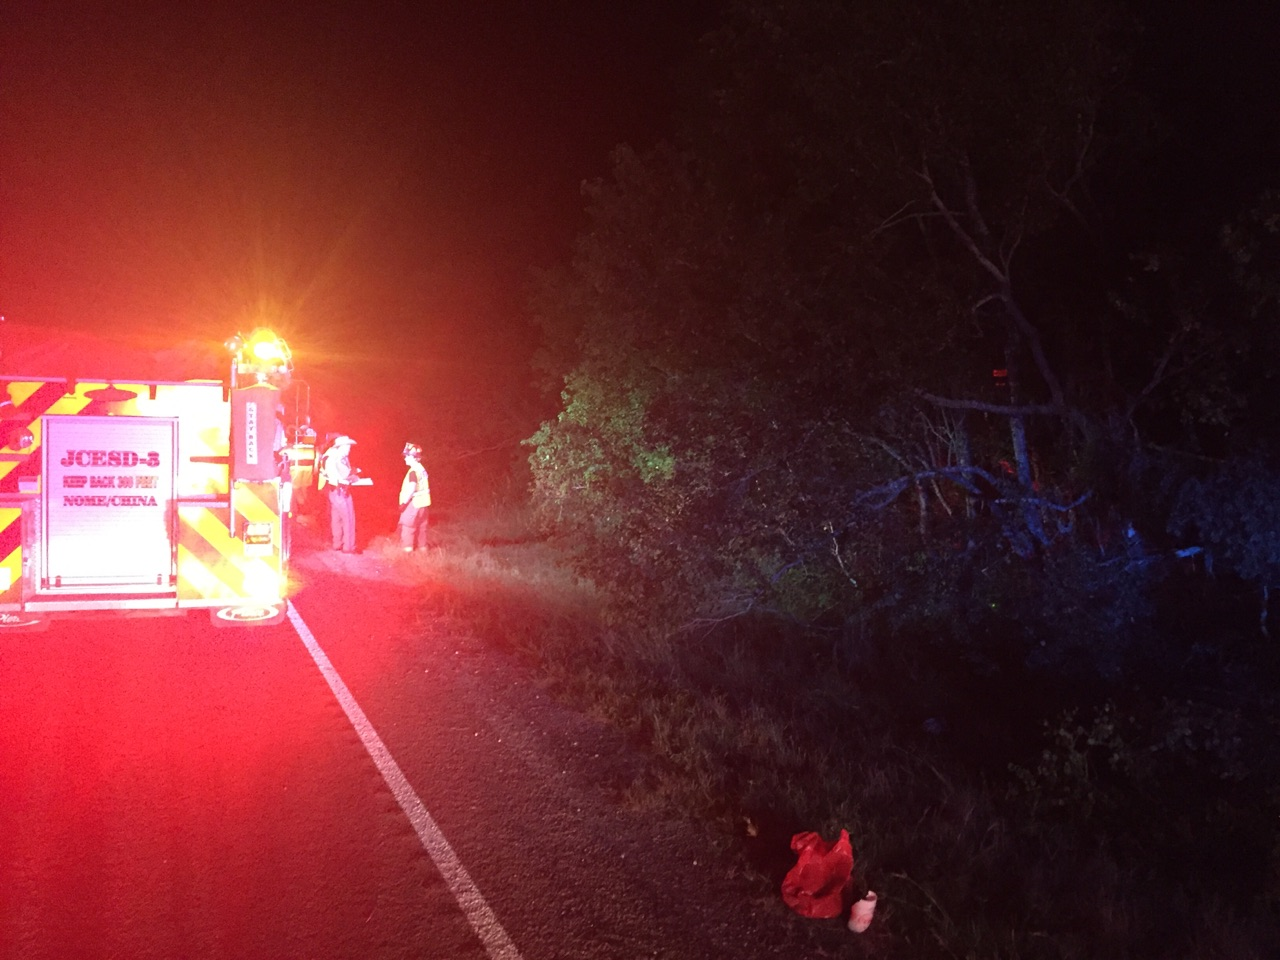 A 23-year-old Beaumont man was found dead from an apparent gunshot wound Tuesday morning after a crash on Highway 90 in Jefferson County, according to the Texas Department of Public Safety. (KFDM/Fox 4 photos)